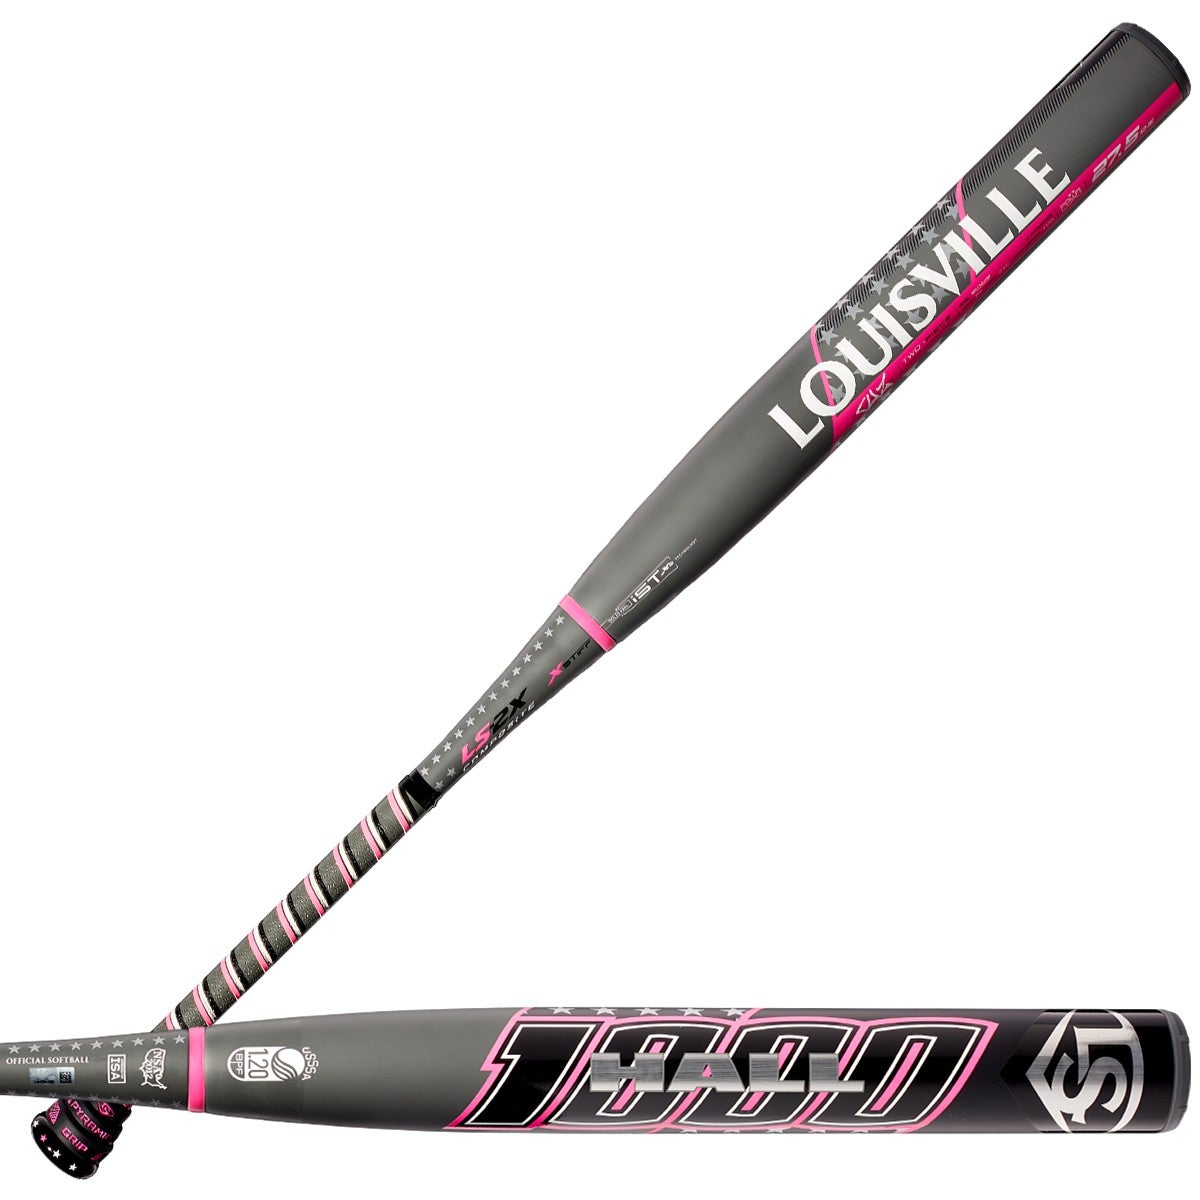 ? 2018 Limited Edition Super Z1000 Powerload Slowpitch Softball Bat (CUZ Edition)